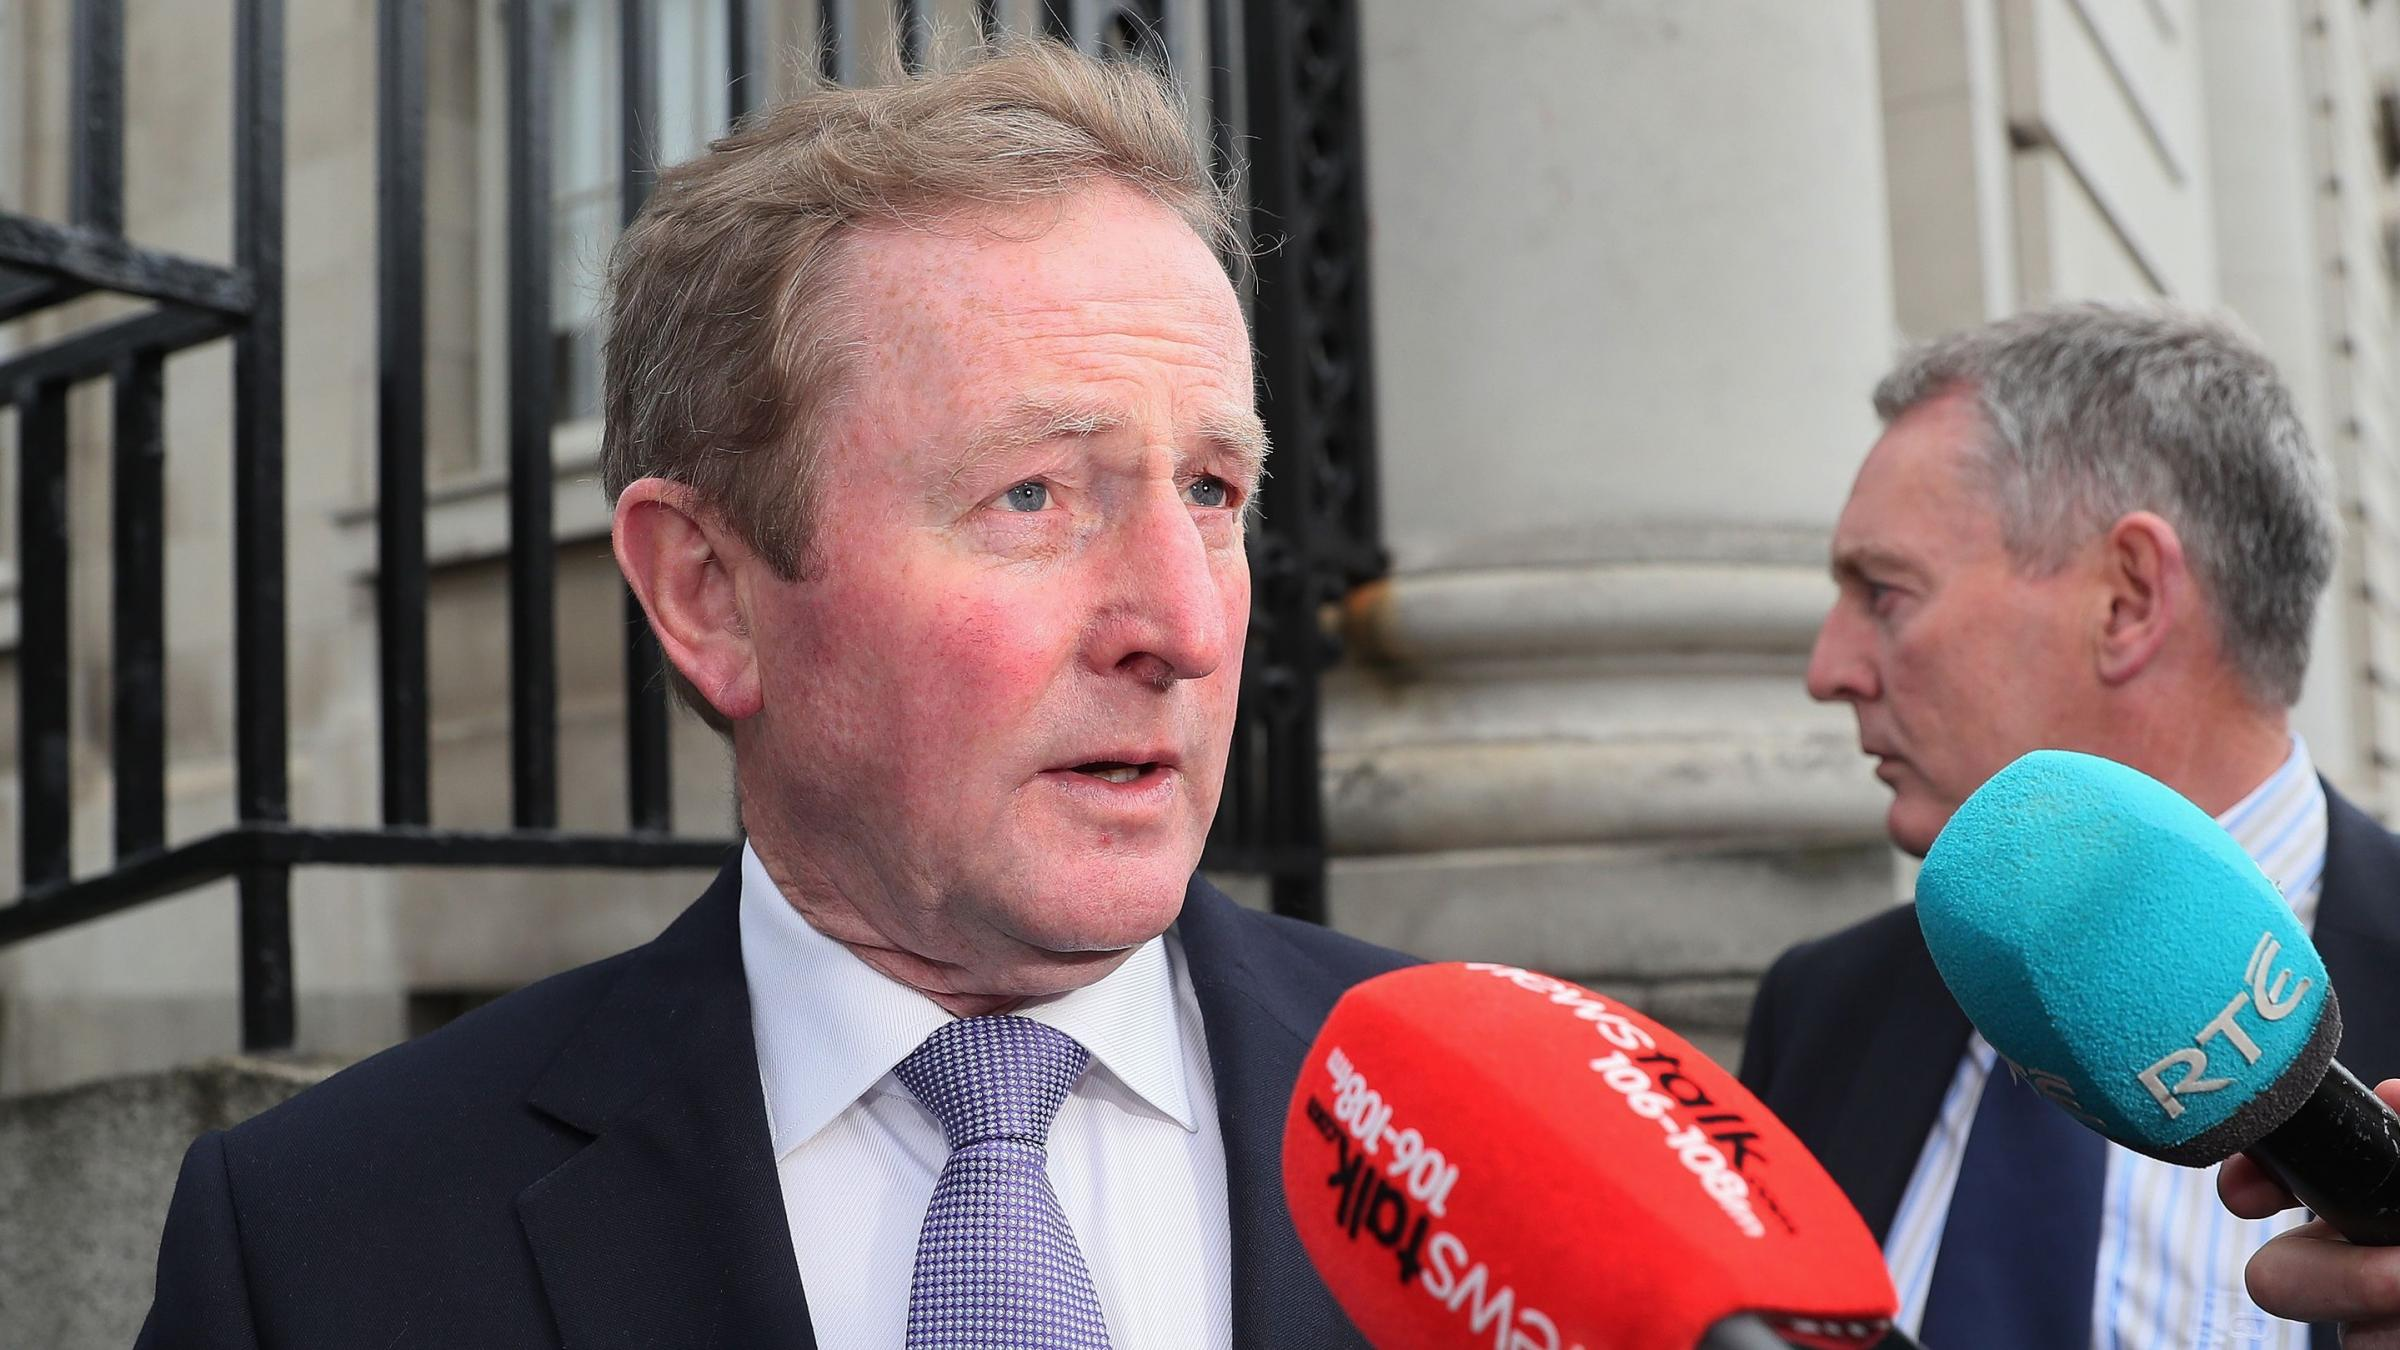 Ireland's new prime minister formally takes power